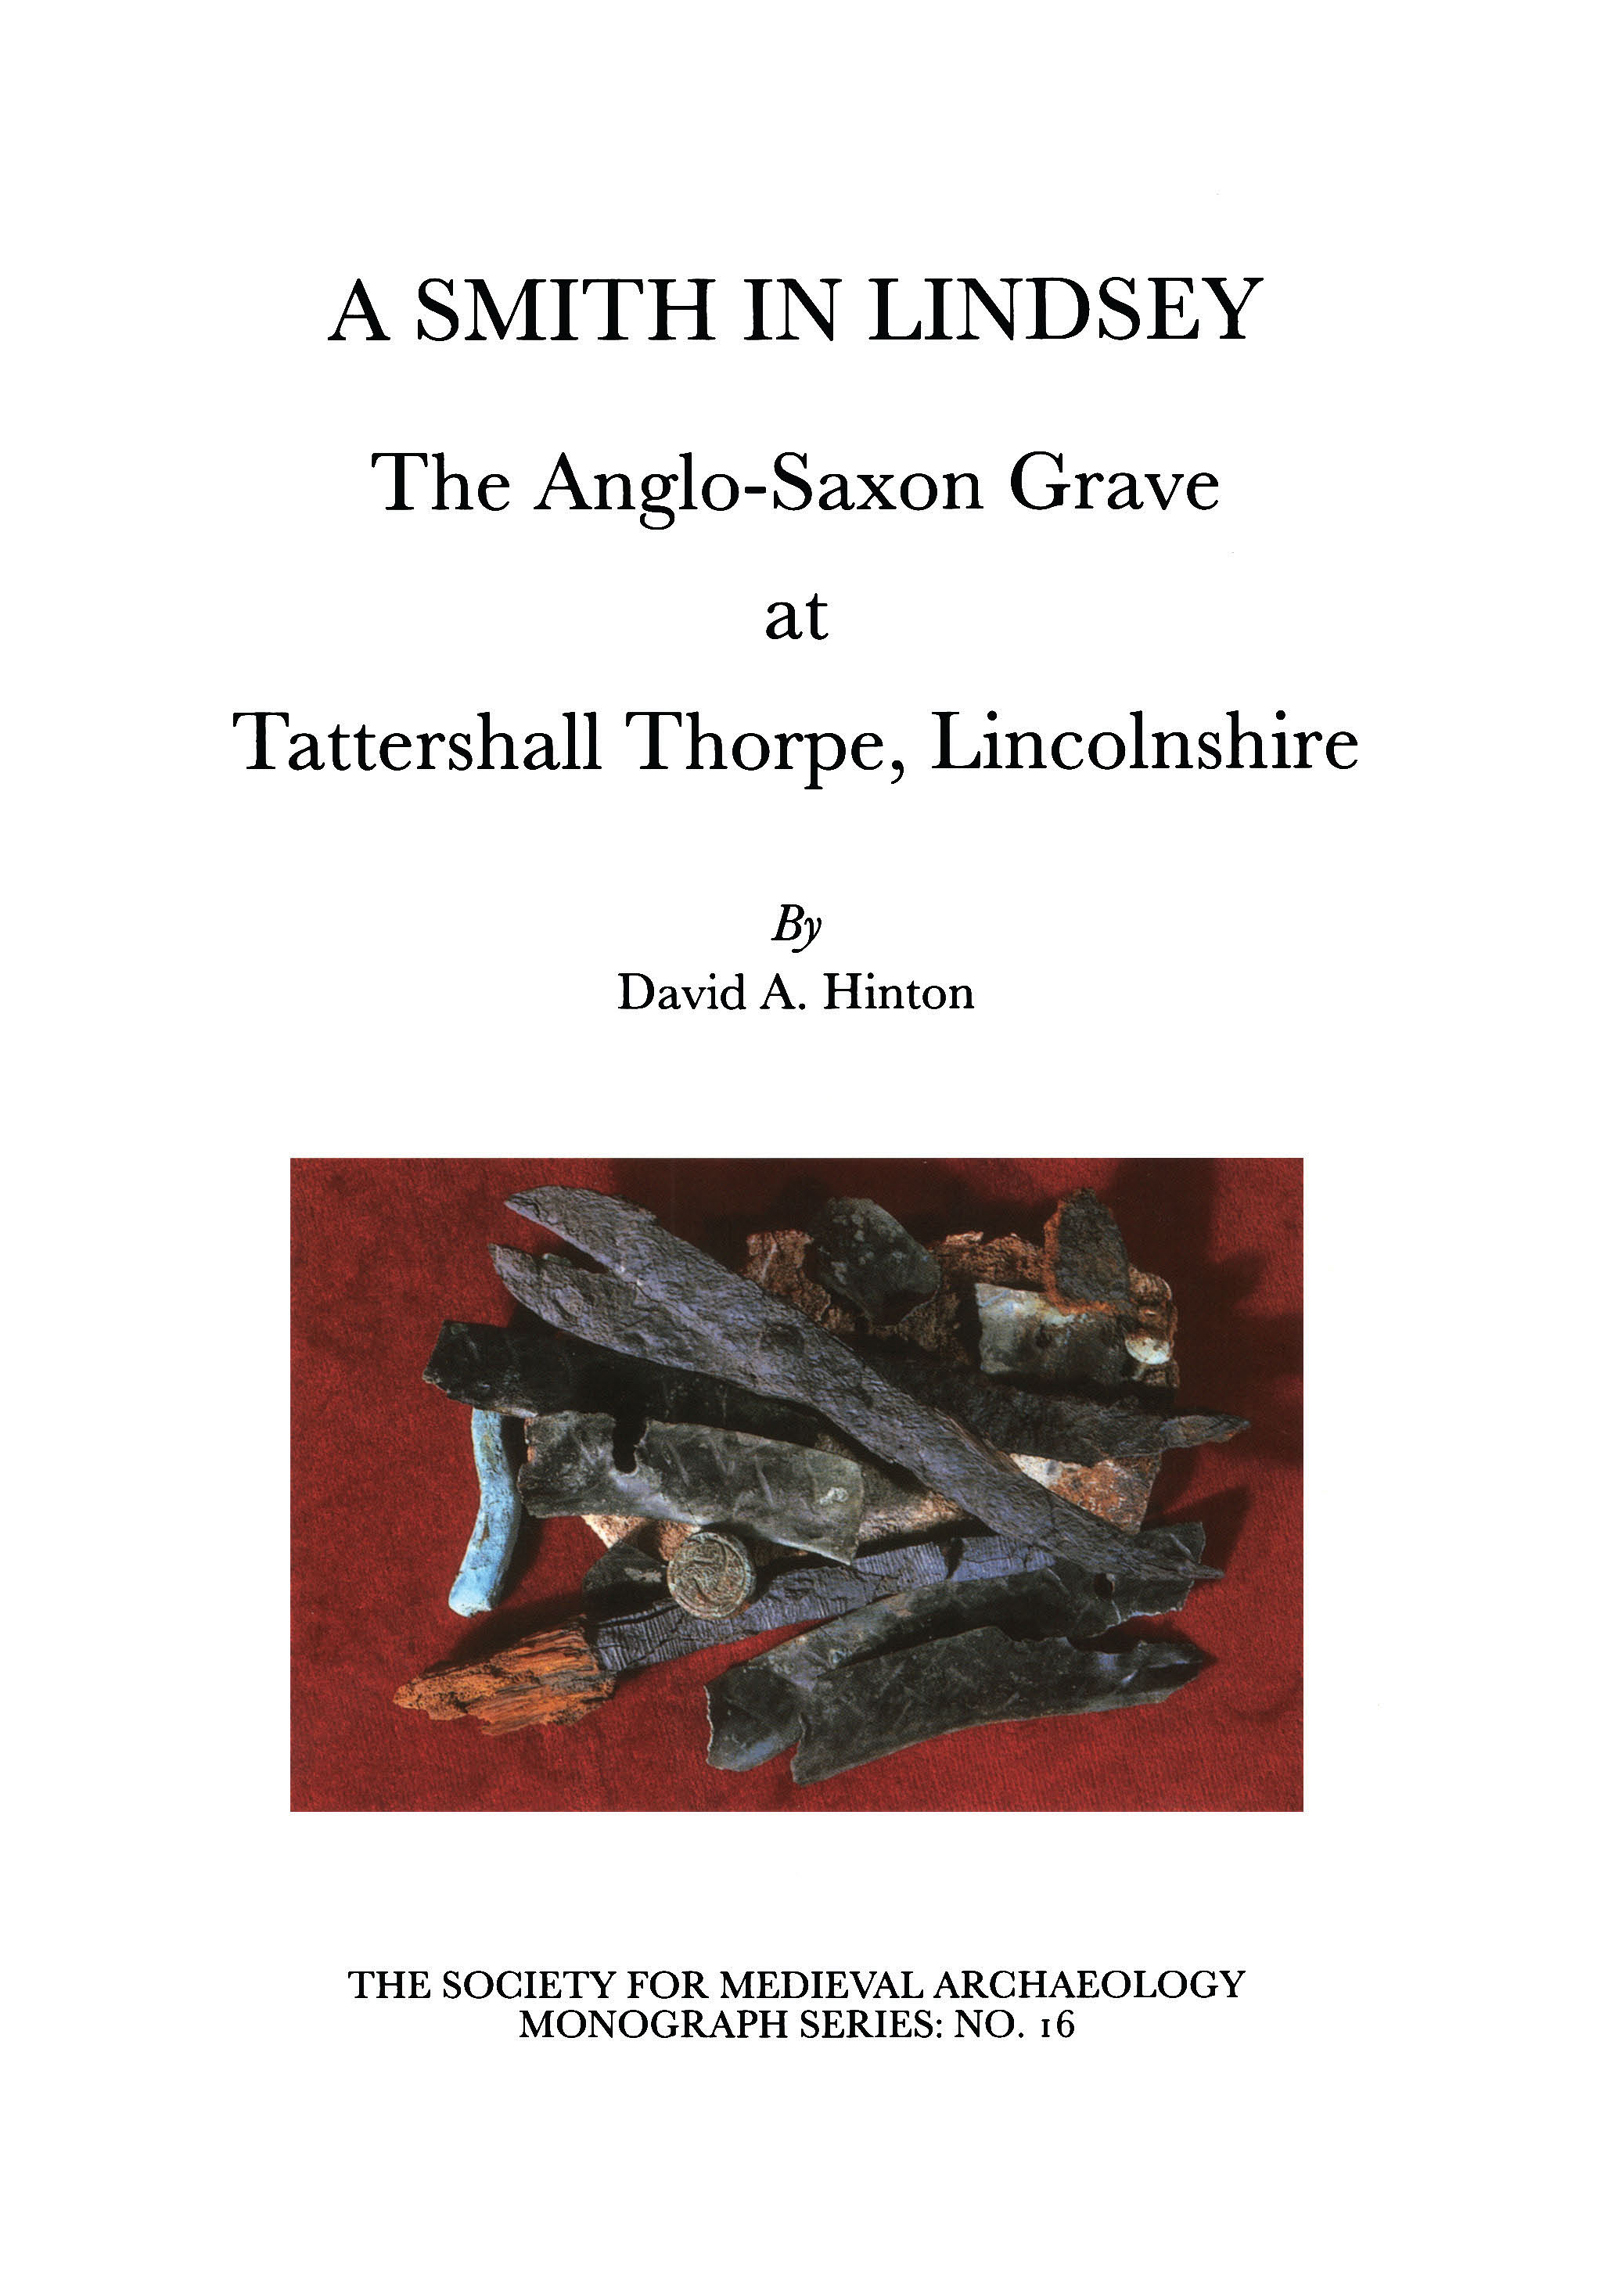 A Smith in Lindsey: The Anglo-Saxon Grave at Tattershall Thorpe, Lincolnshire book cover